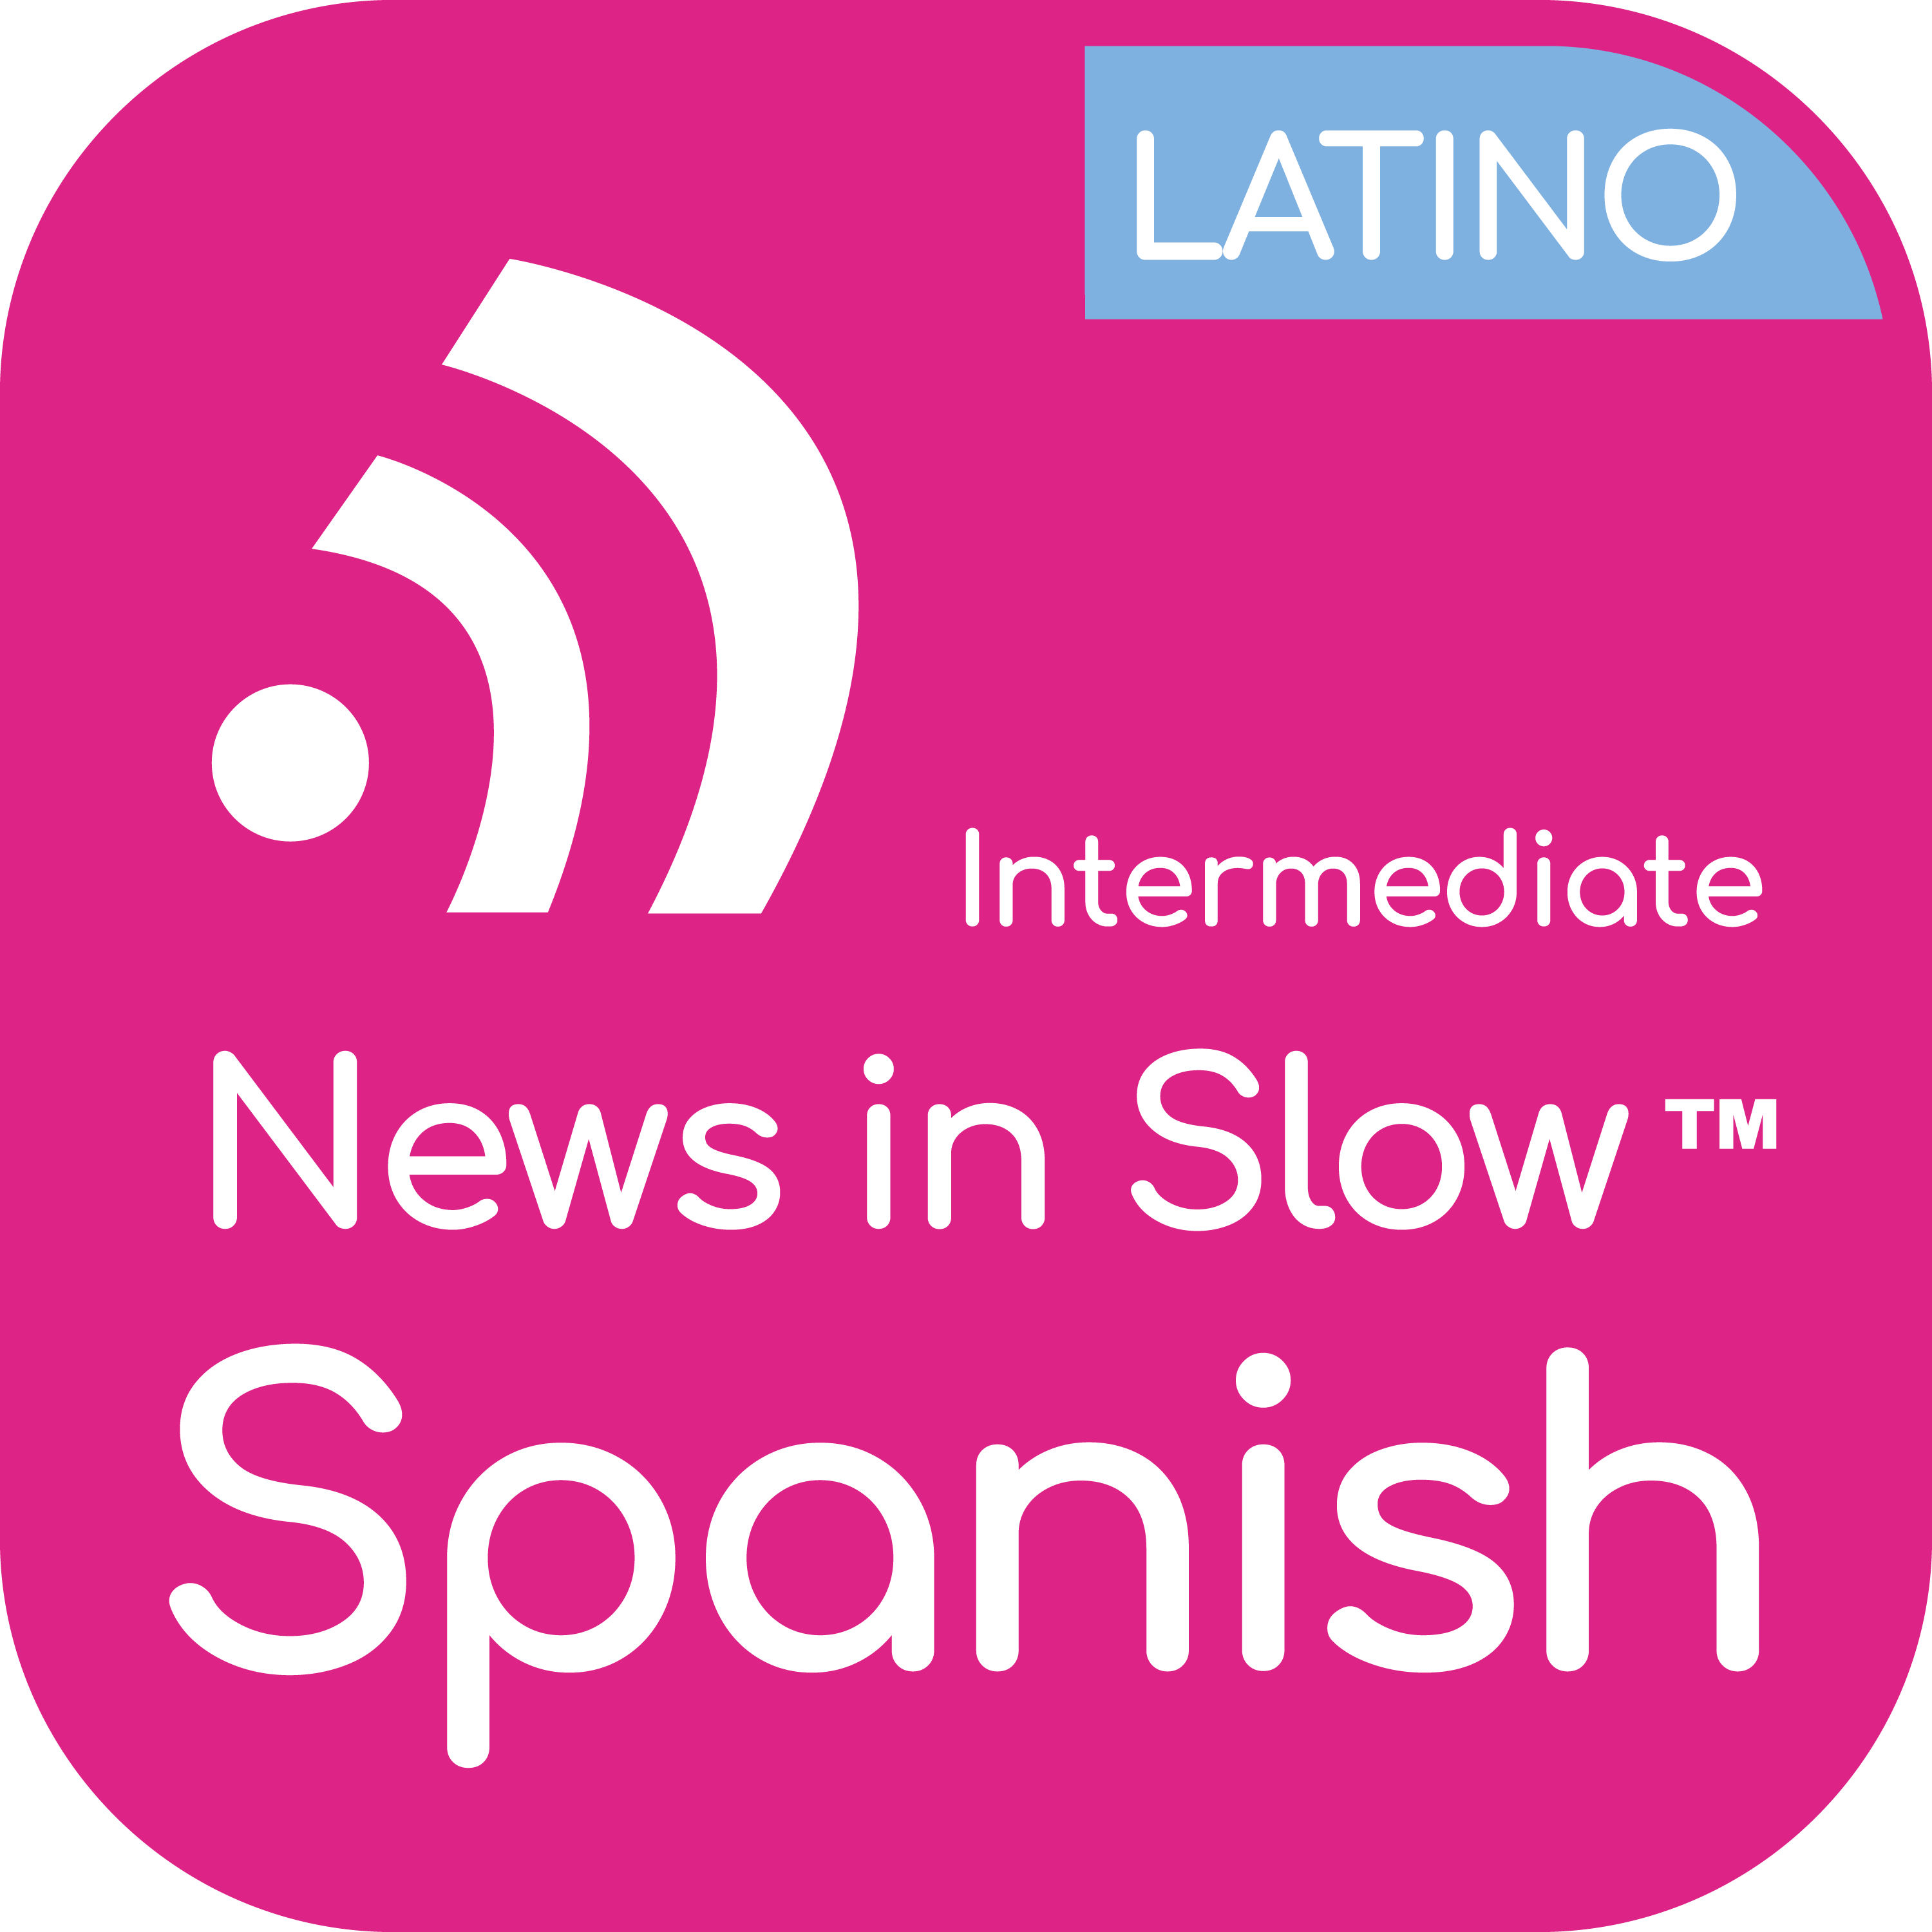 News In Slow Spanish Latino #385 - Spanish Expressions, News, and Grammar